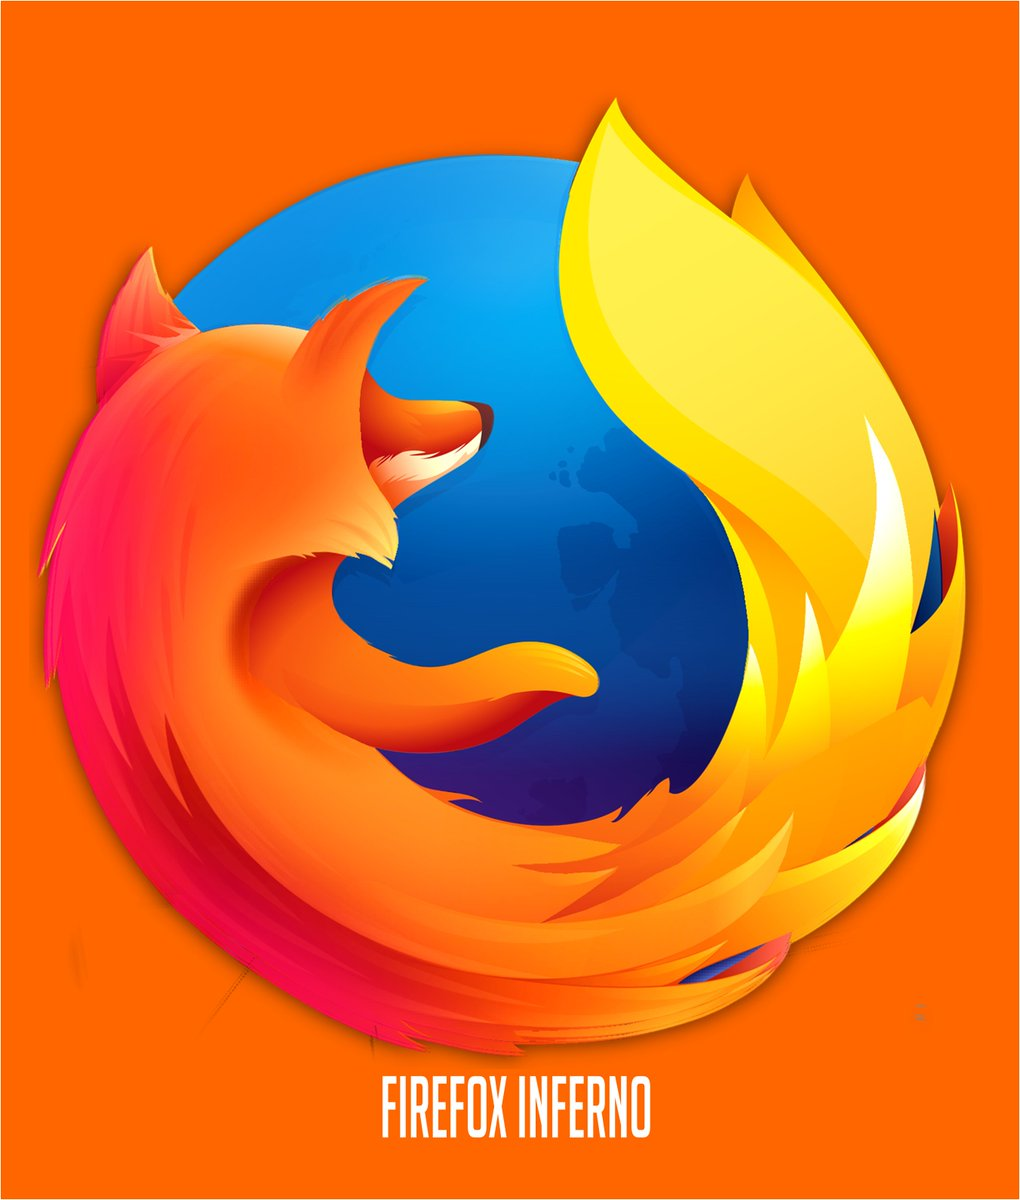 I'm seeing everyone talking about how they hate the newer Firefox logos, and now I'm thinking of the design I made a few years ago combining all the versions together. Even a chrome logo too. Basically a mash of skeuomorphism and minimalism #Firefox #Chrome